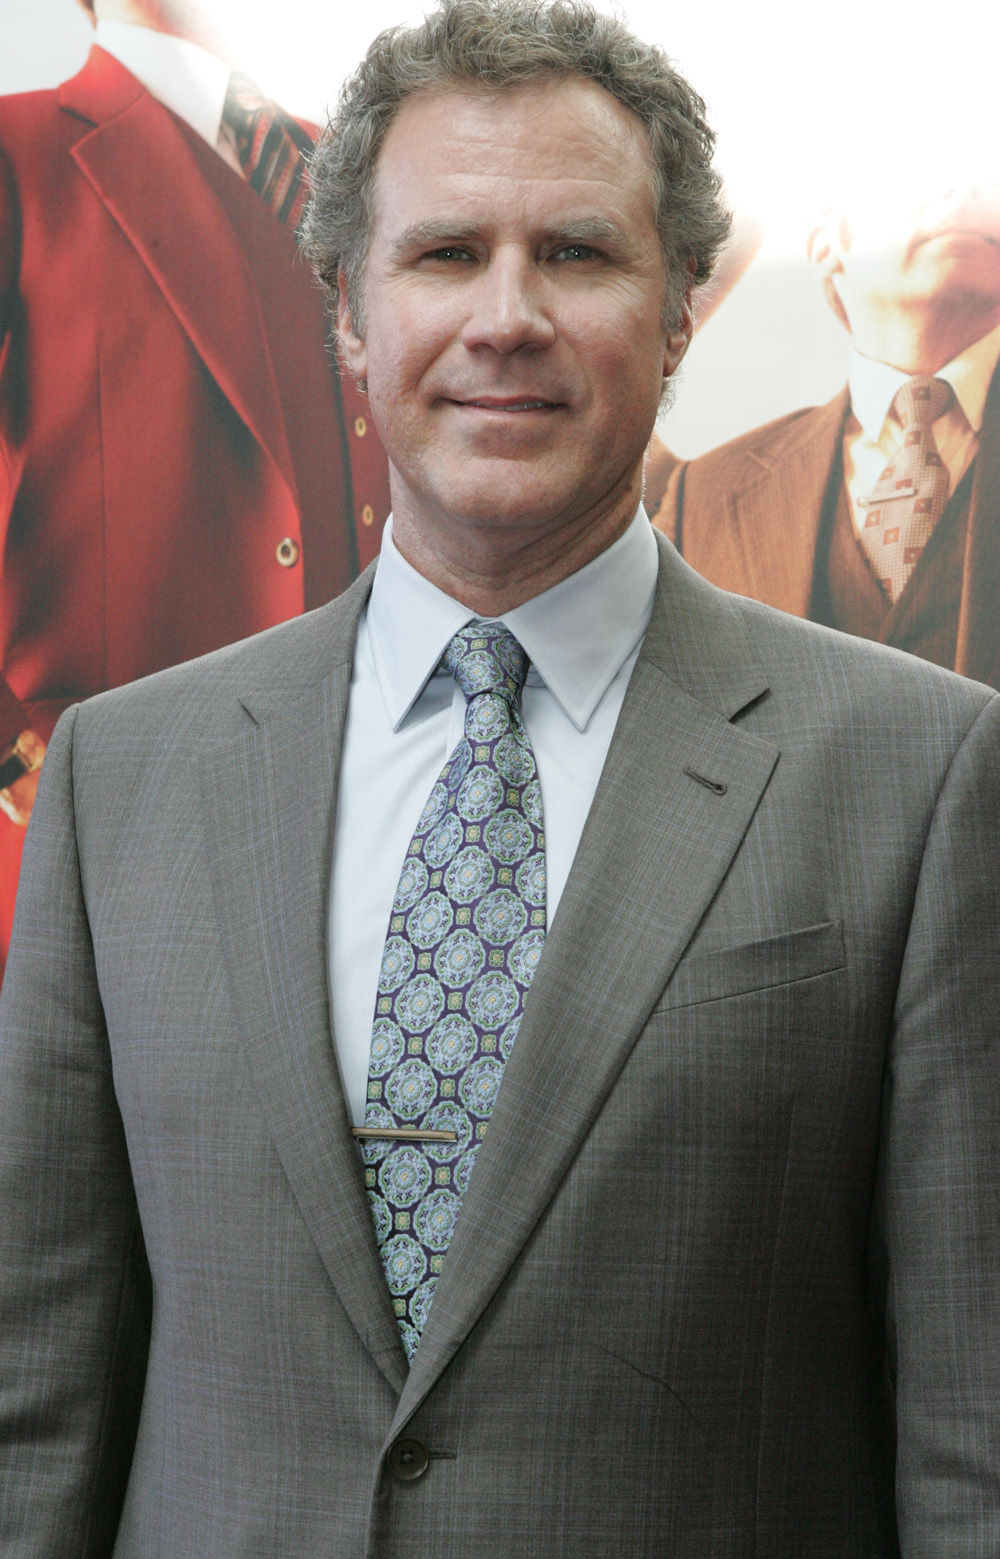 Photo of Will Ferrell: American actor, writer, and comedian